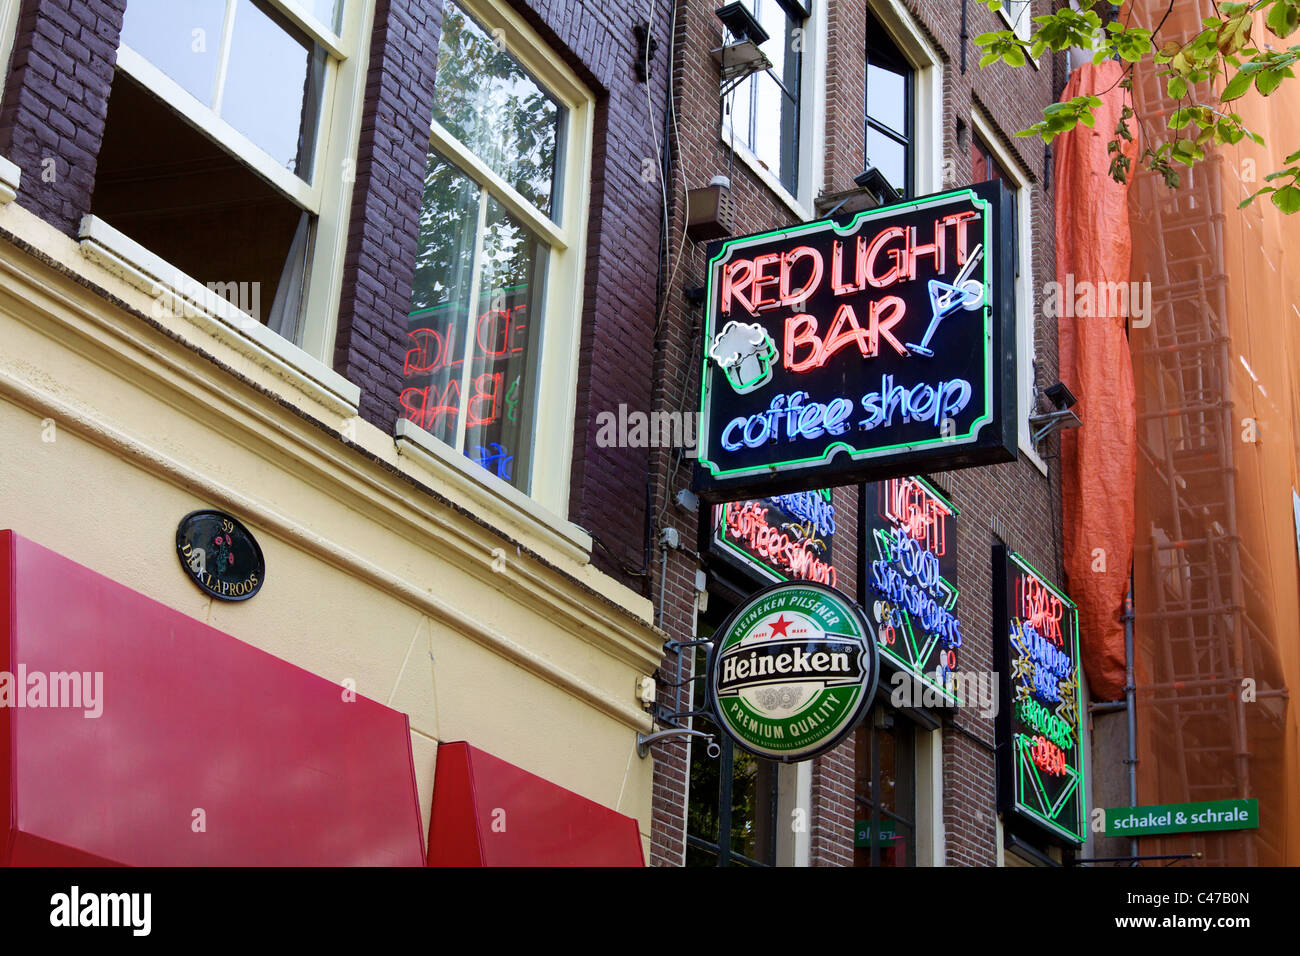 Red light bar amsterdam stock photo royalty free image 37041669 red light bar amsterdam aloadofball Image collections